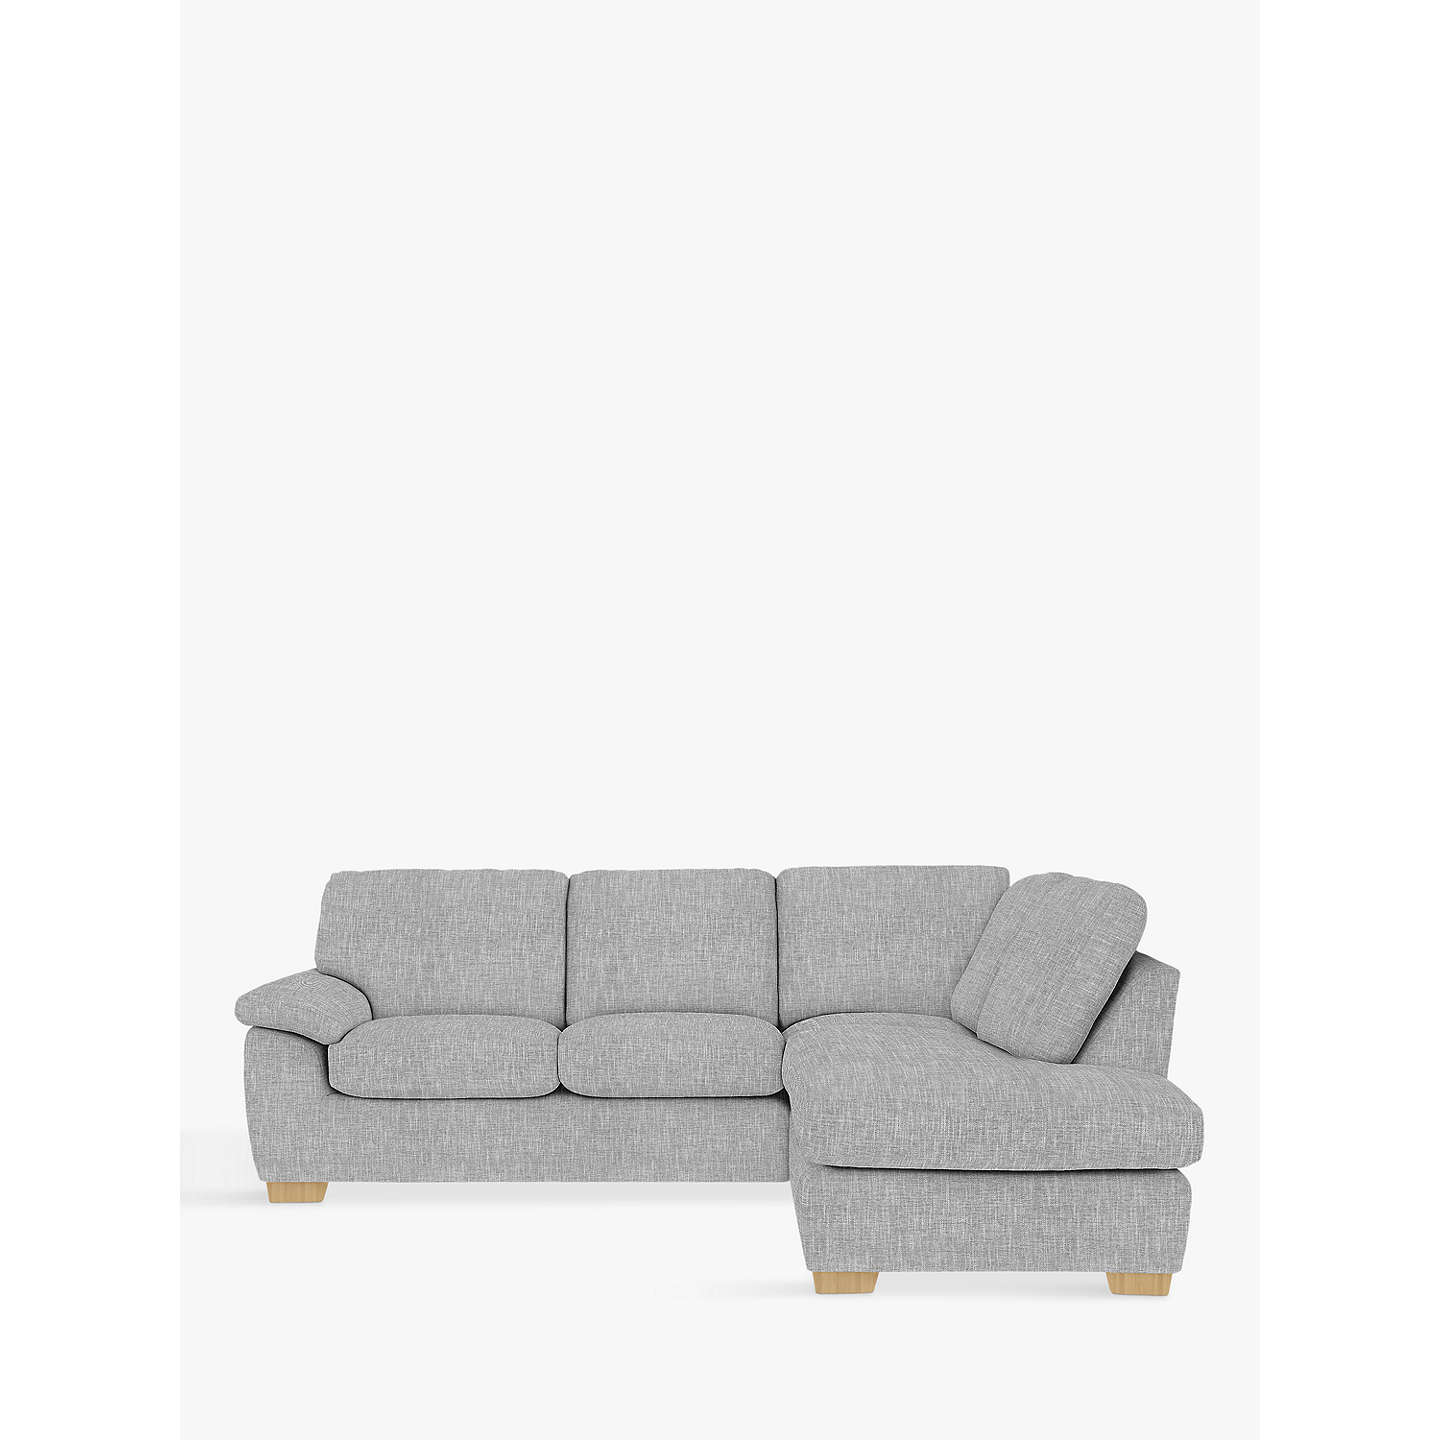 John Lewis Cooper Corner Sofa: John Lewis Camden RHF Corner End Chaise Unit, Light Leg At